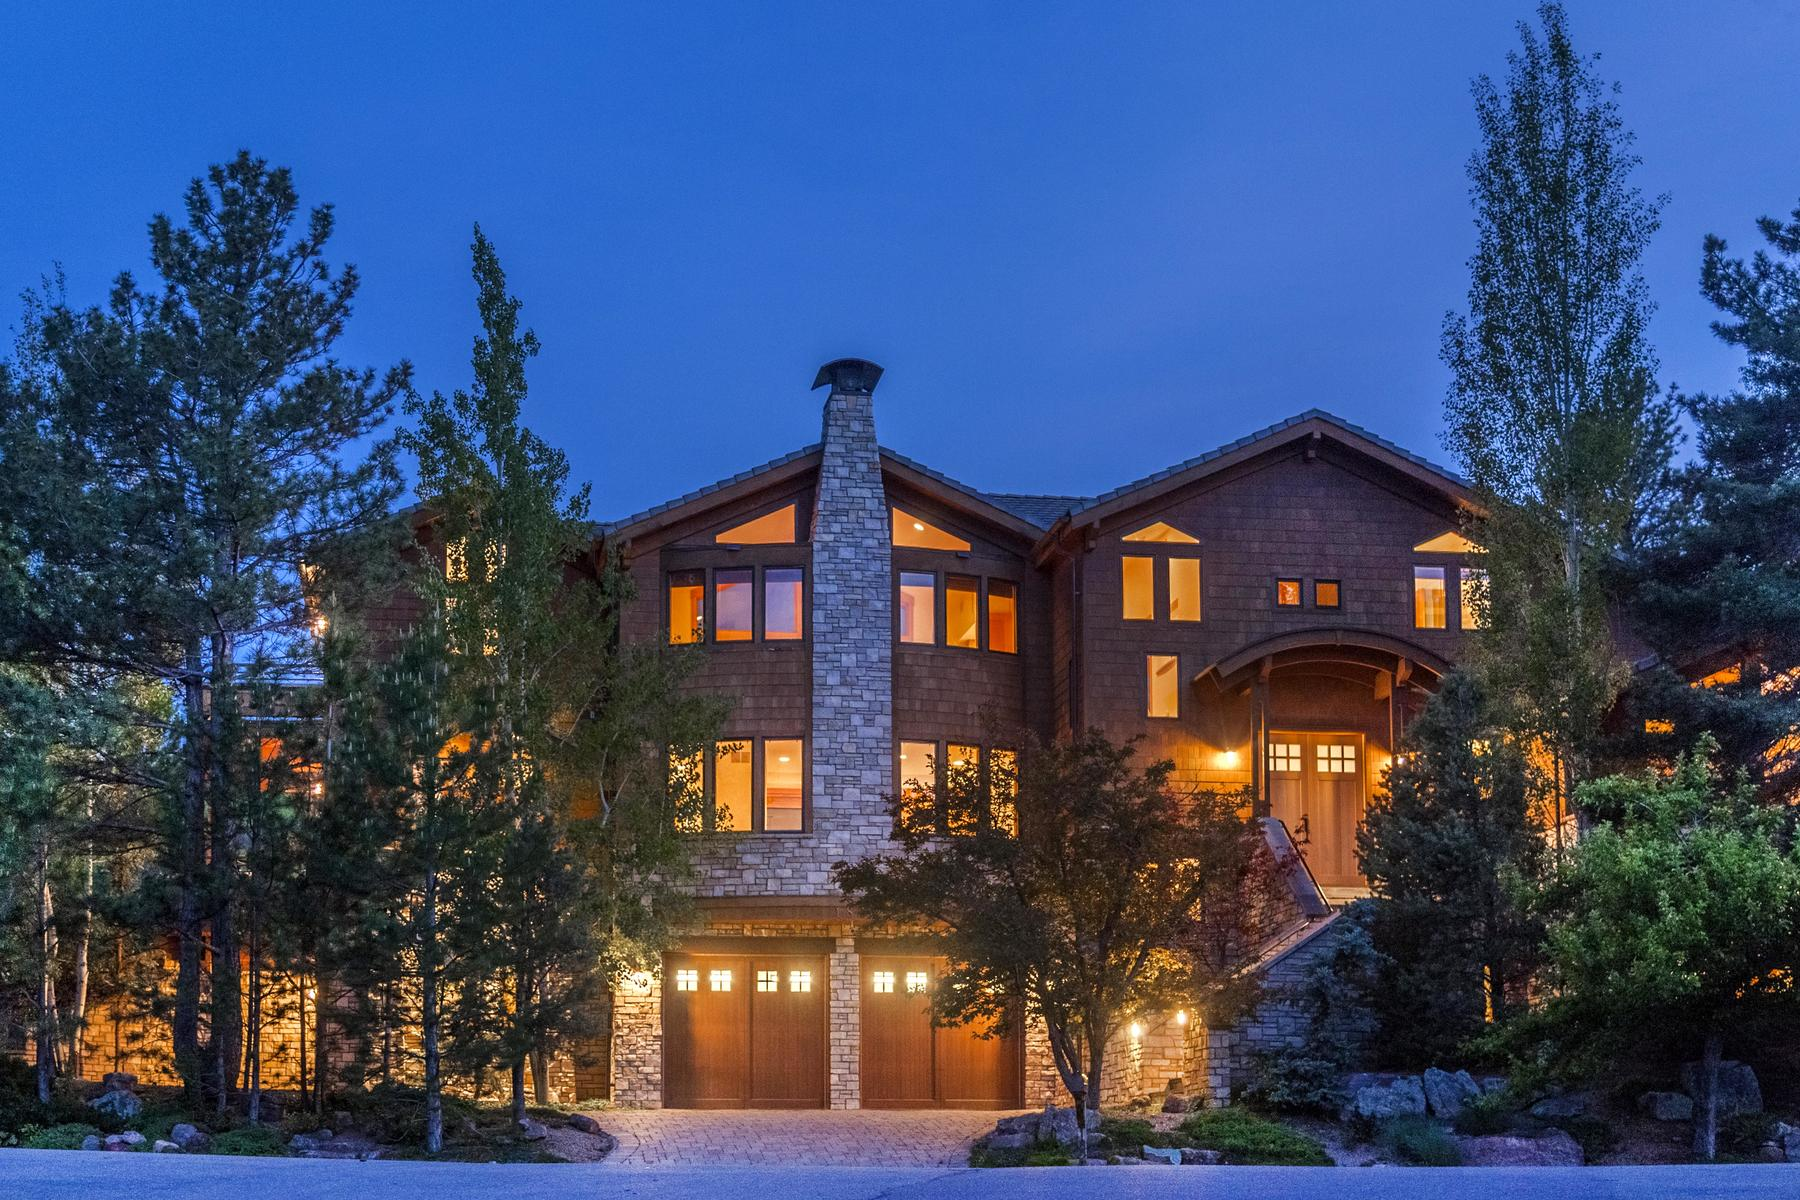 Property for Active at Masterpiece Backing to Chautauqua Trails 1820 Deer Valley Rd Boulder, Colorado 80305 United States